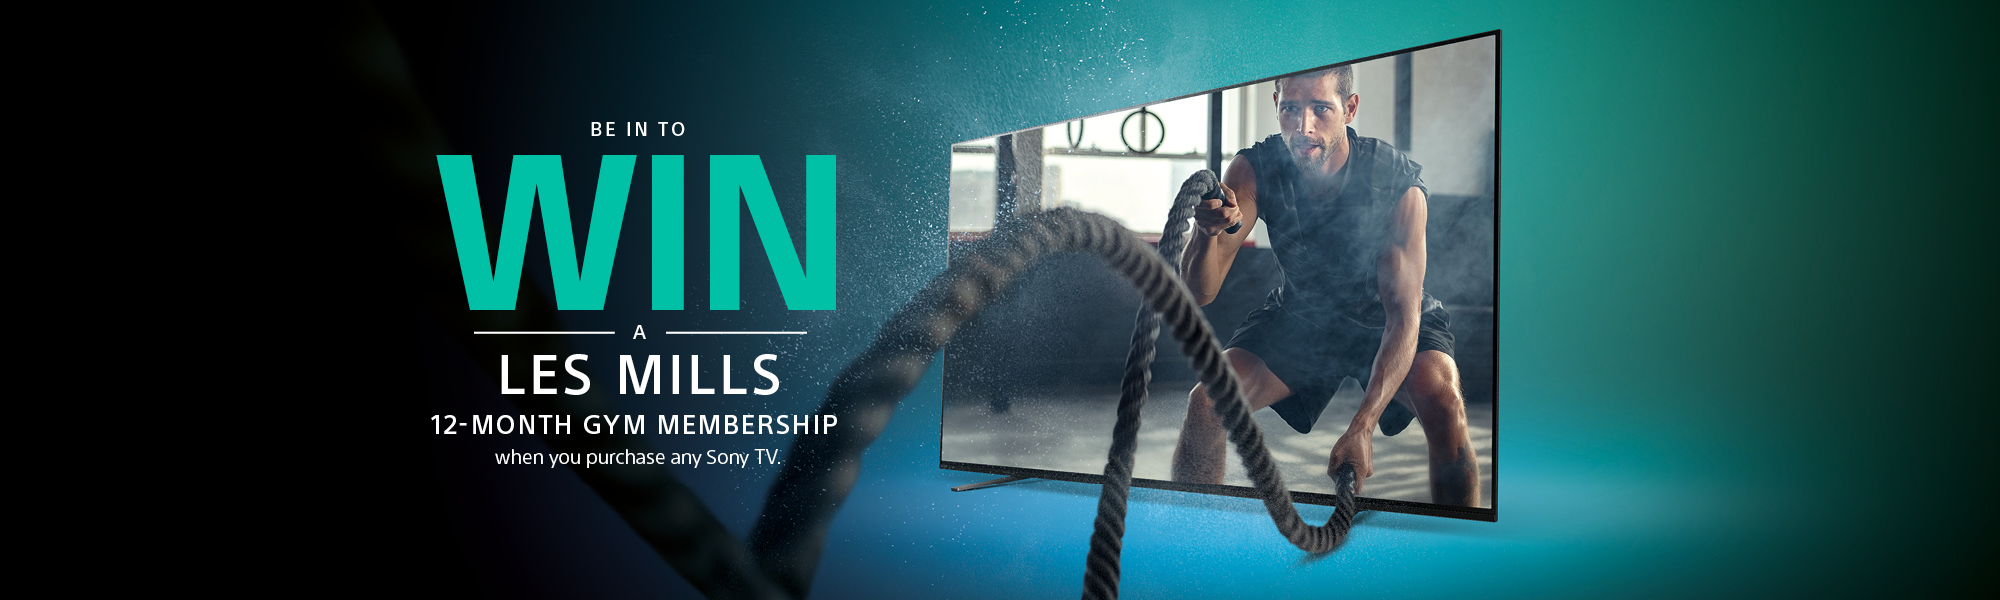 Banner   Be in to win a Les Mills 12-month Gym Membership when you purchase any Sony TV